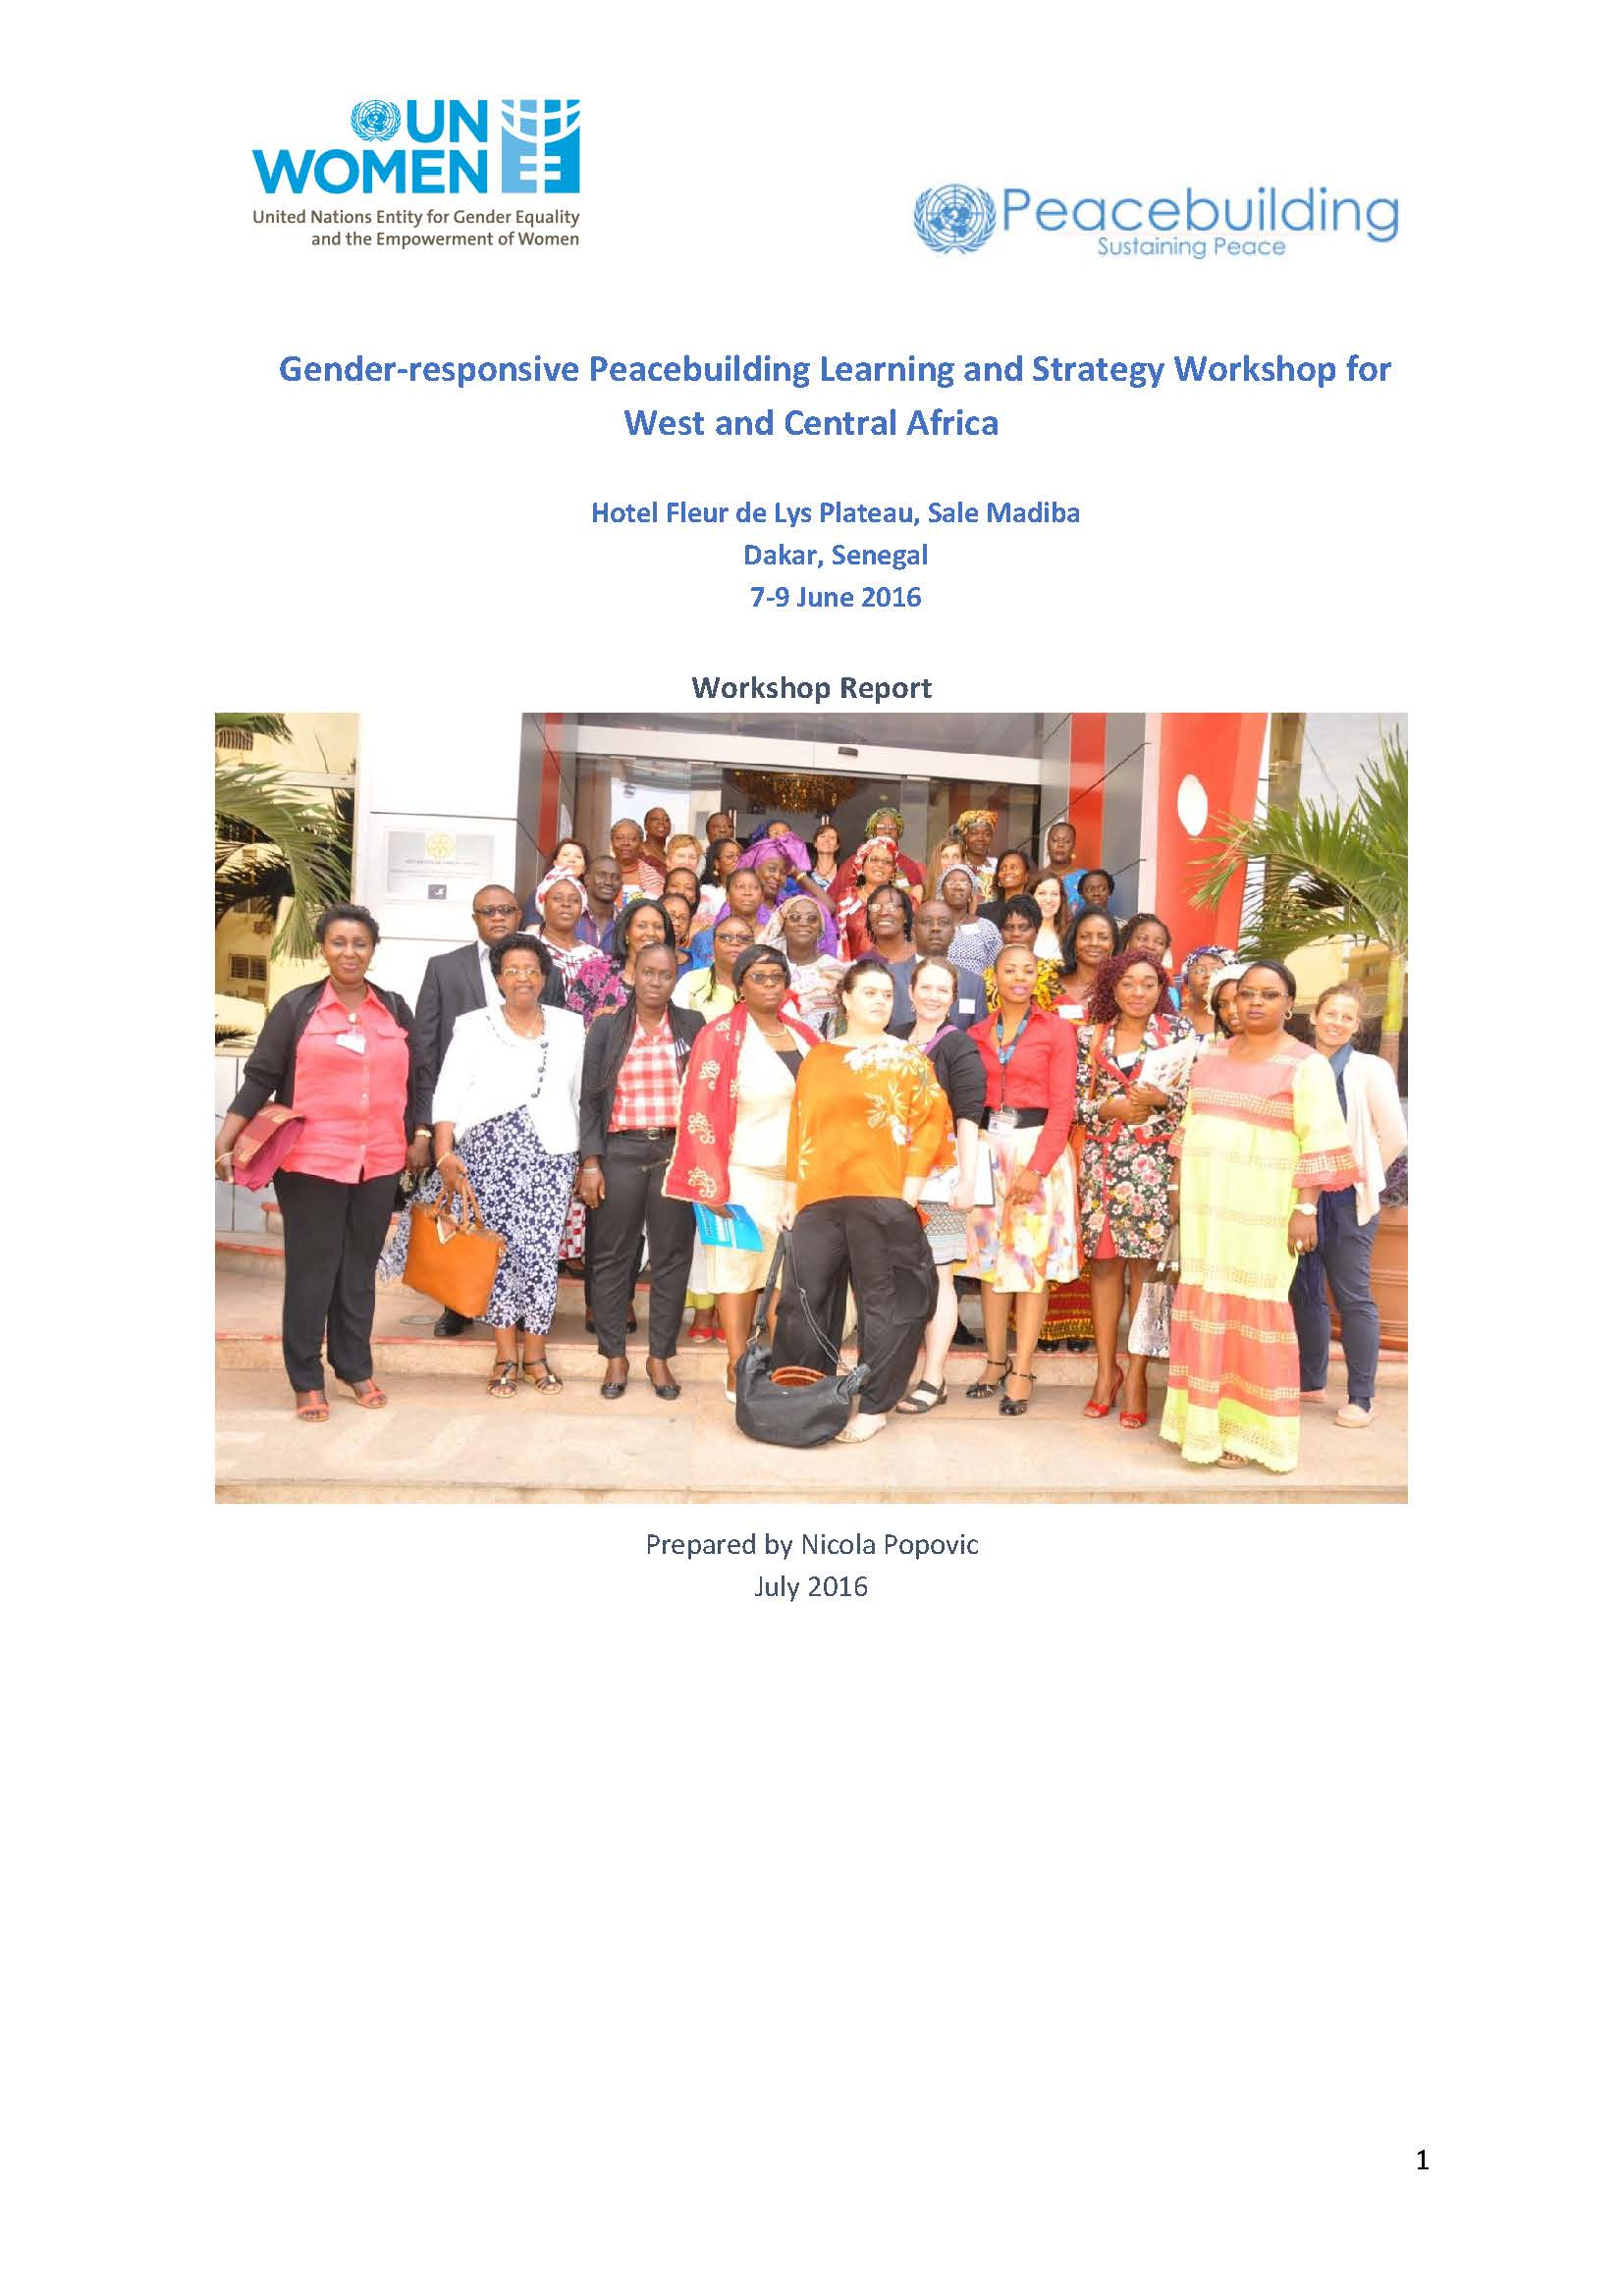 Gender responsive Peacebuilding Learning and Strategy Workshop for West and Central Africa